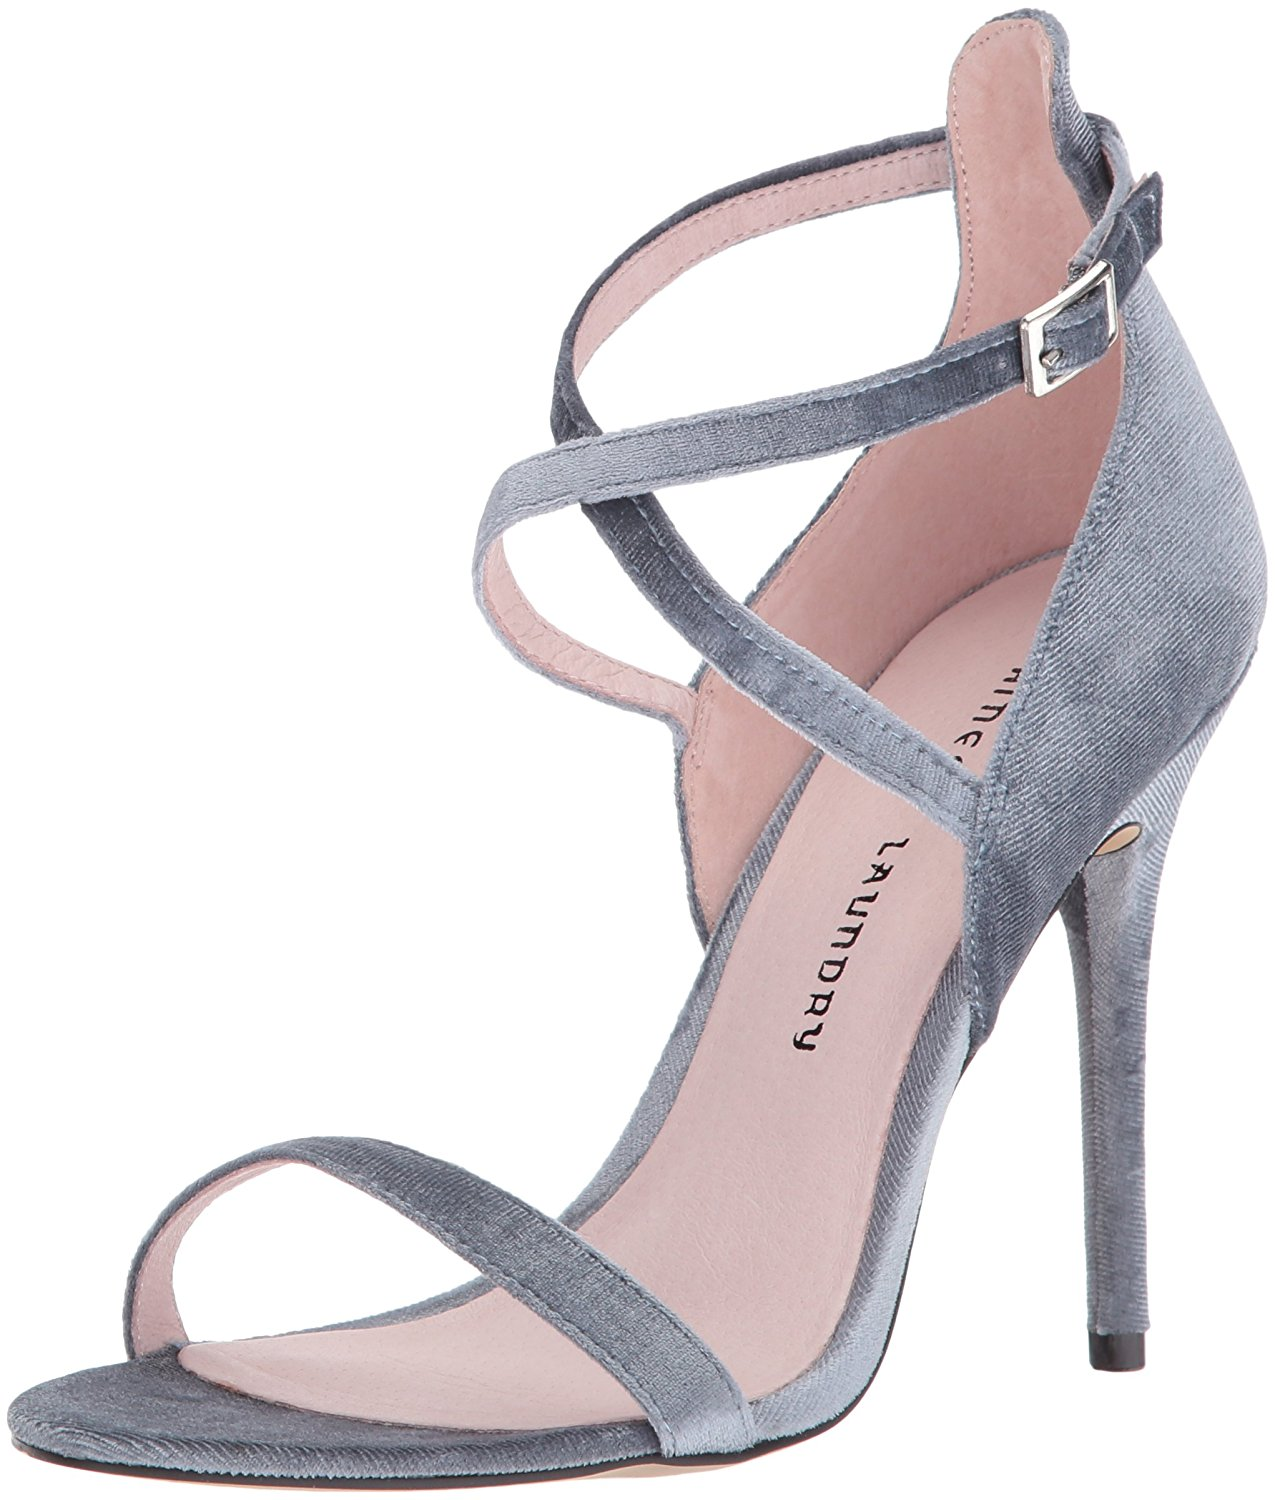 01e5a154afe Chinese Laundry Womens Lavelle Open Toe Casual Ankle Strap Sandals ...